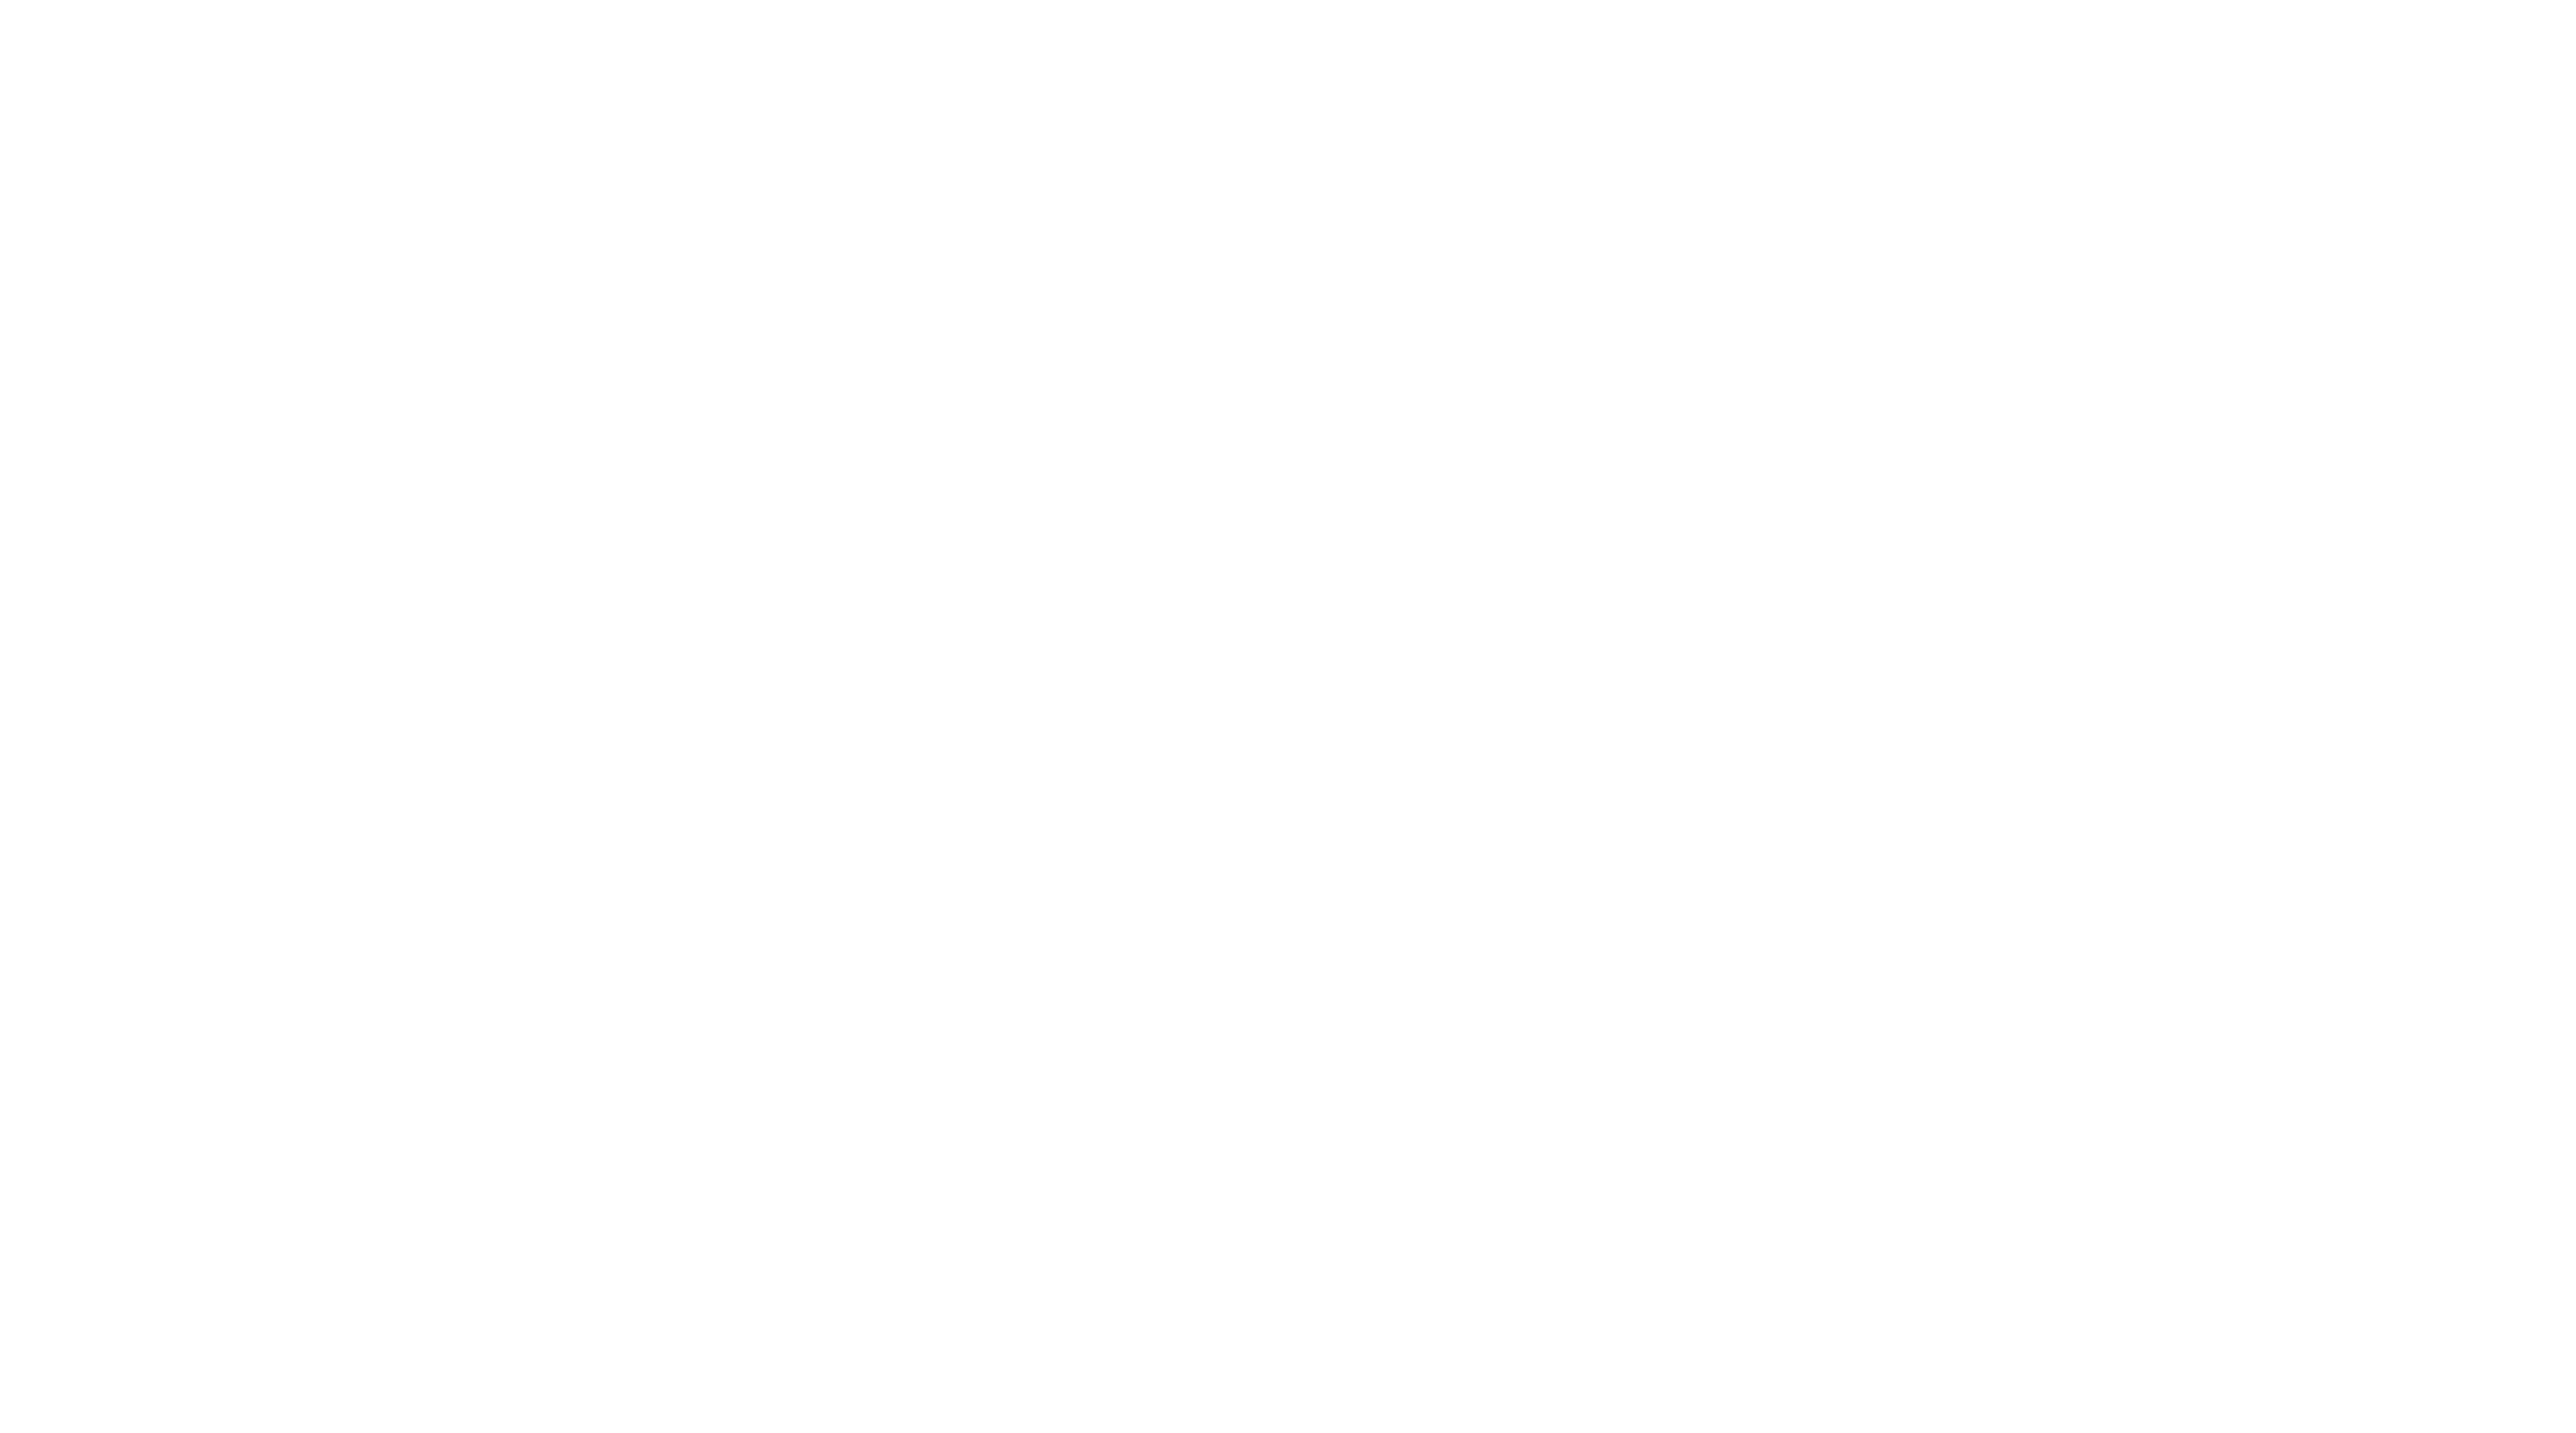 Bernie Brae Travel Connections logo